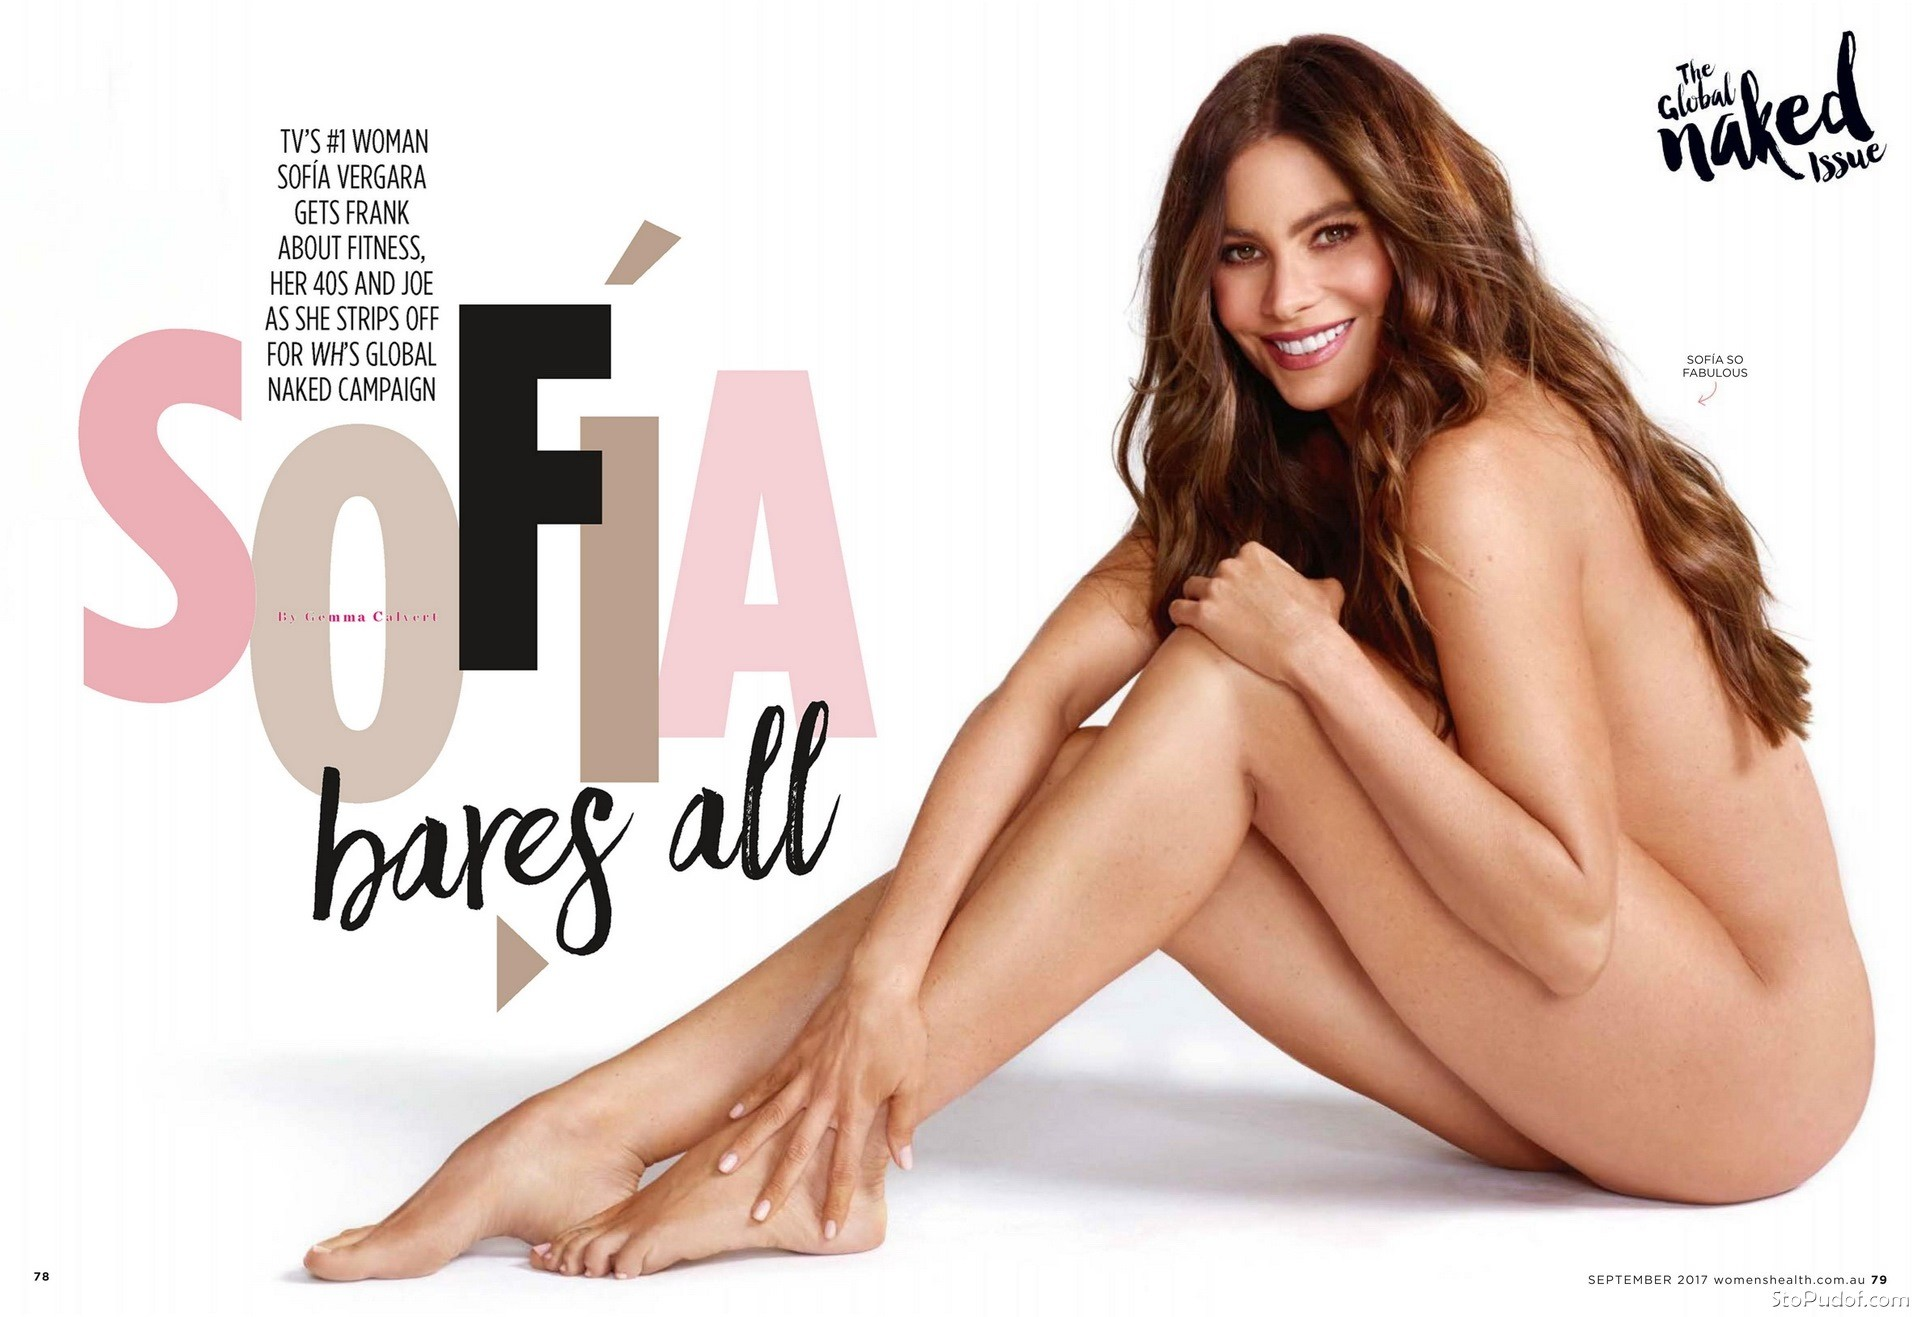 Sofia Vergara hot naked - UkPhotoSafari